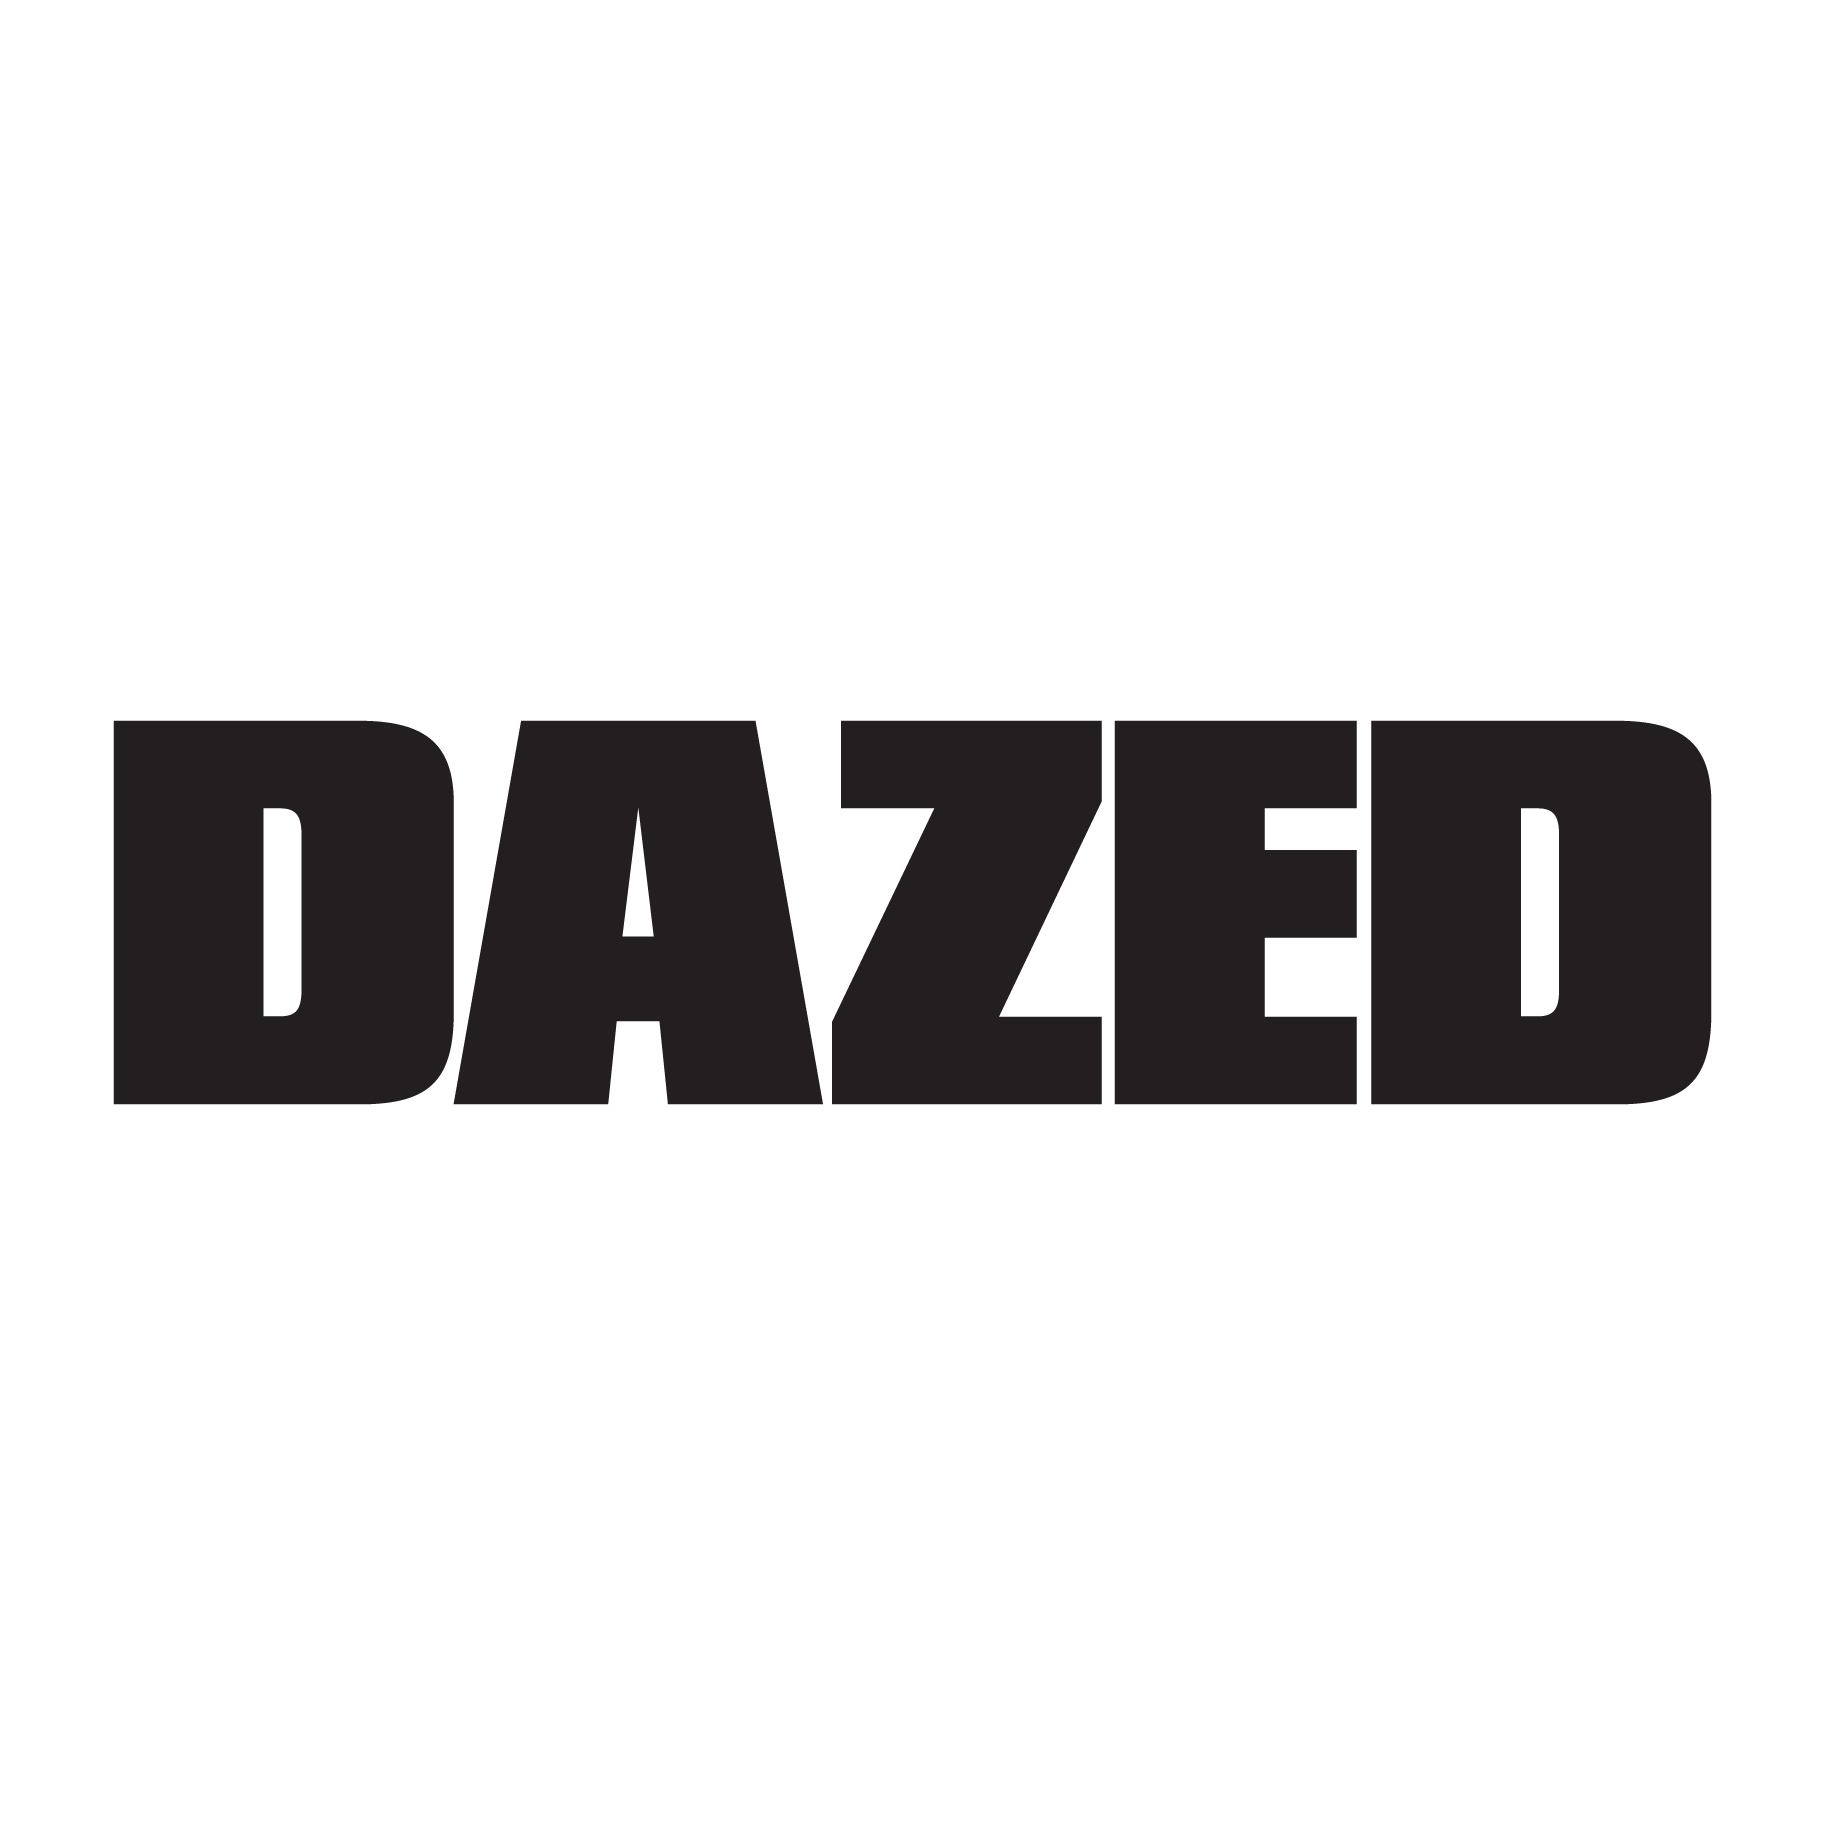 David Bowie | Dazed http://www.dazeddigital.com/tag/david-bowie | Graphic design marketing, Media logo, Music magazines